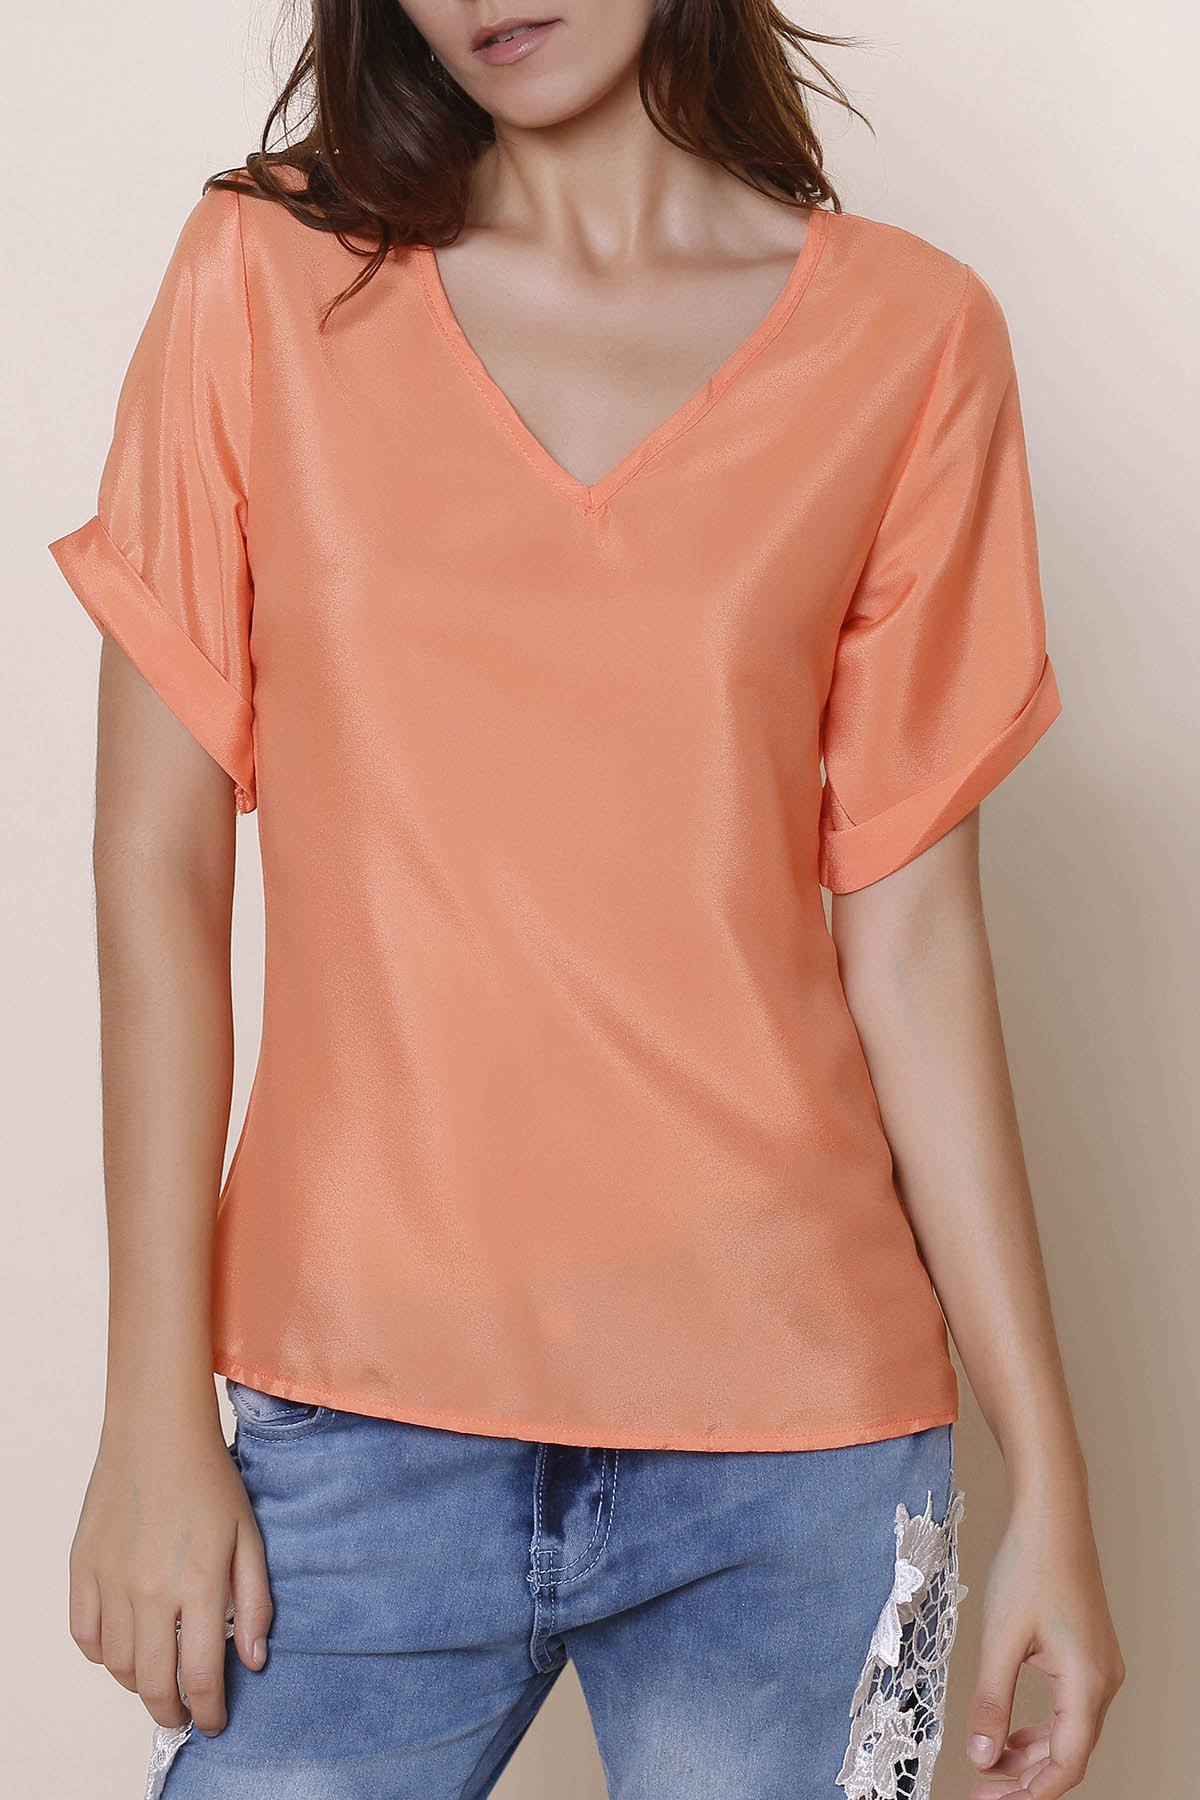 Simple V-Neck Solid Color Short Sleeve Chiffon Women's T-Shirt - ORANGEPINK M